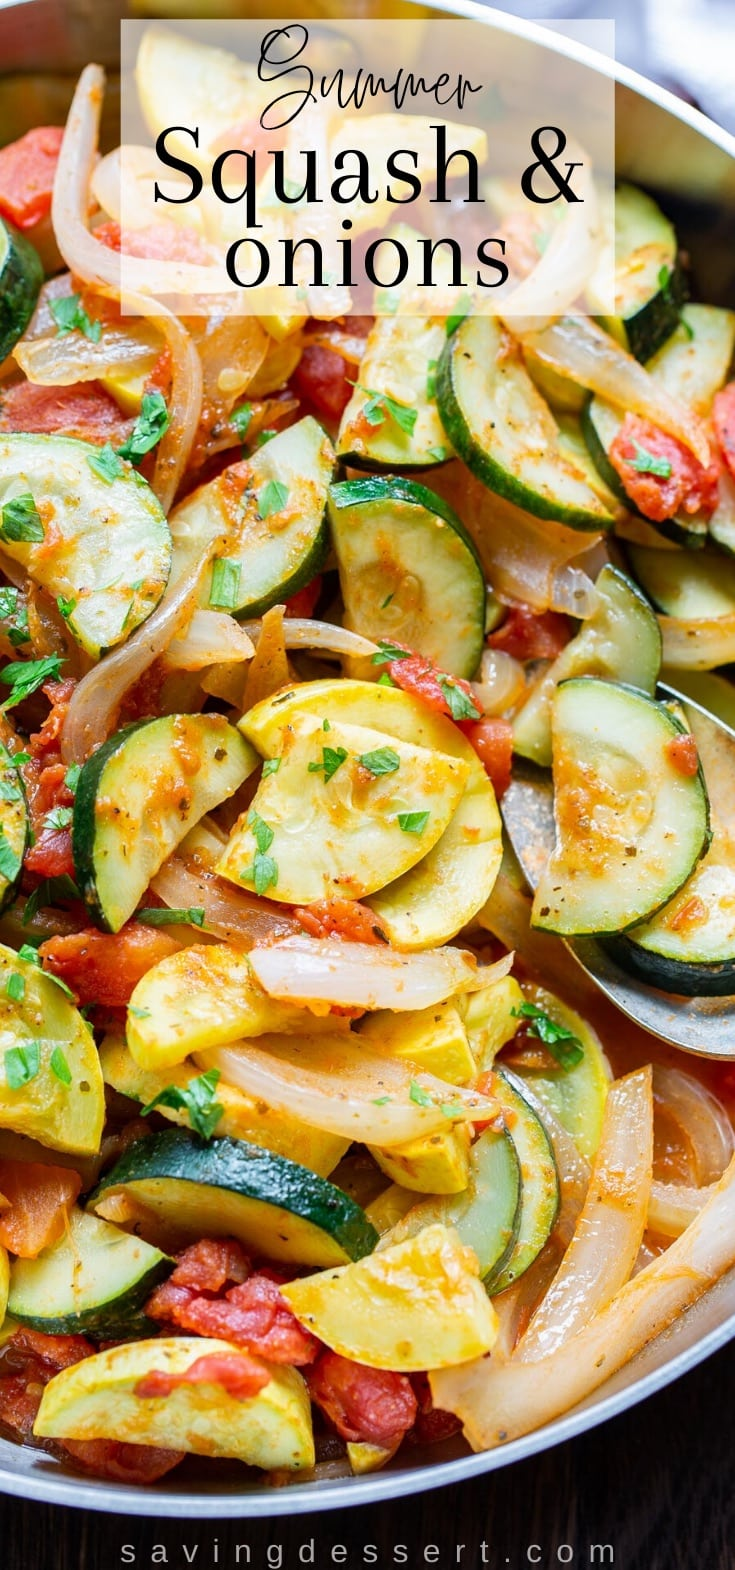 an overhead shot of a skillet filled with yellow squash, zucchini, onions and tomatoes